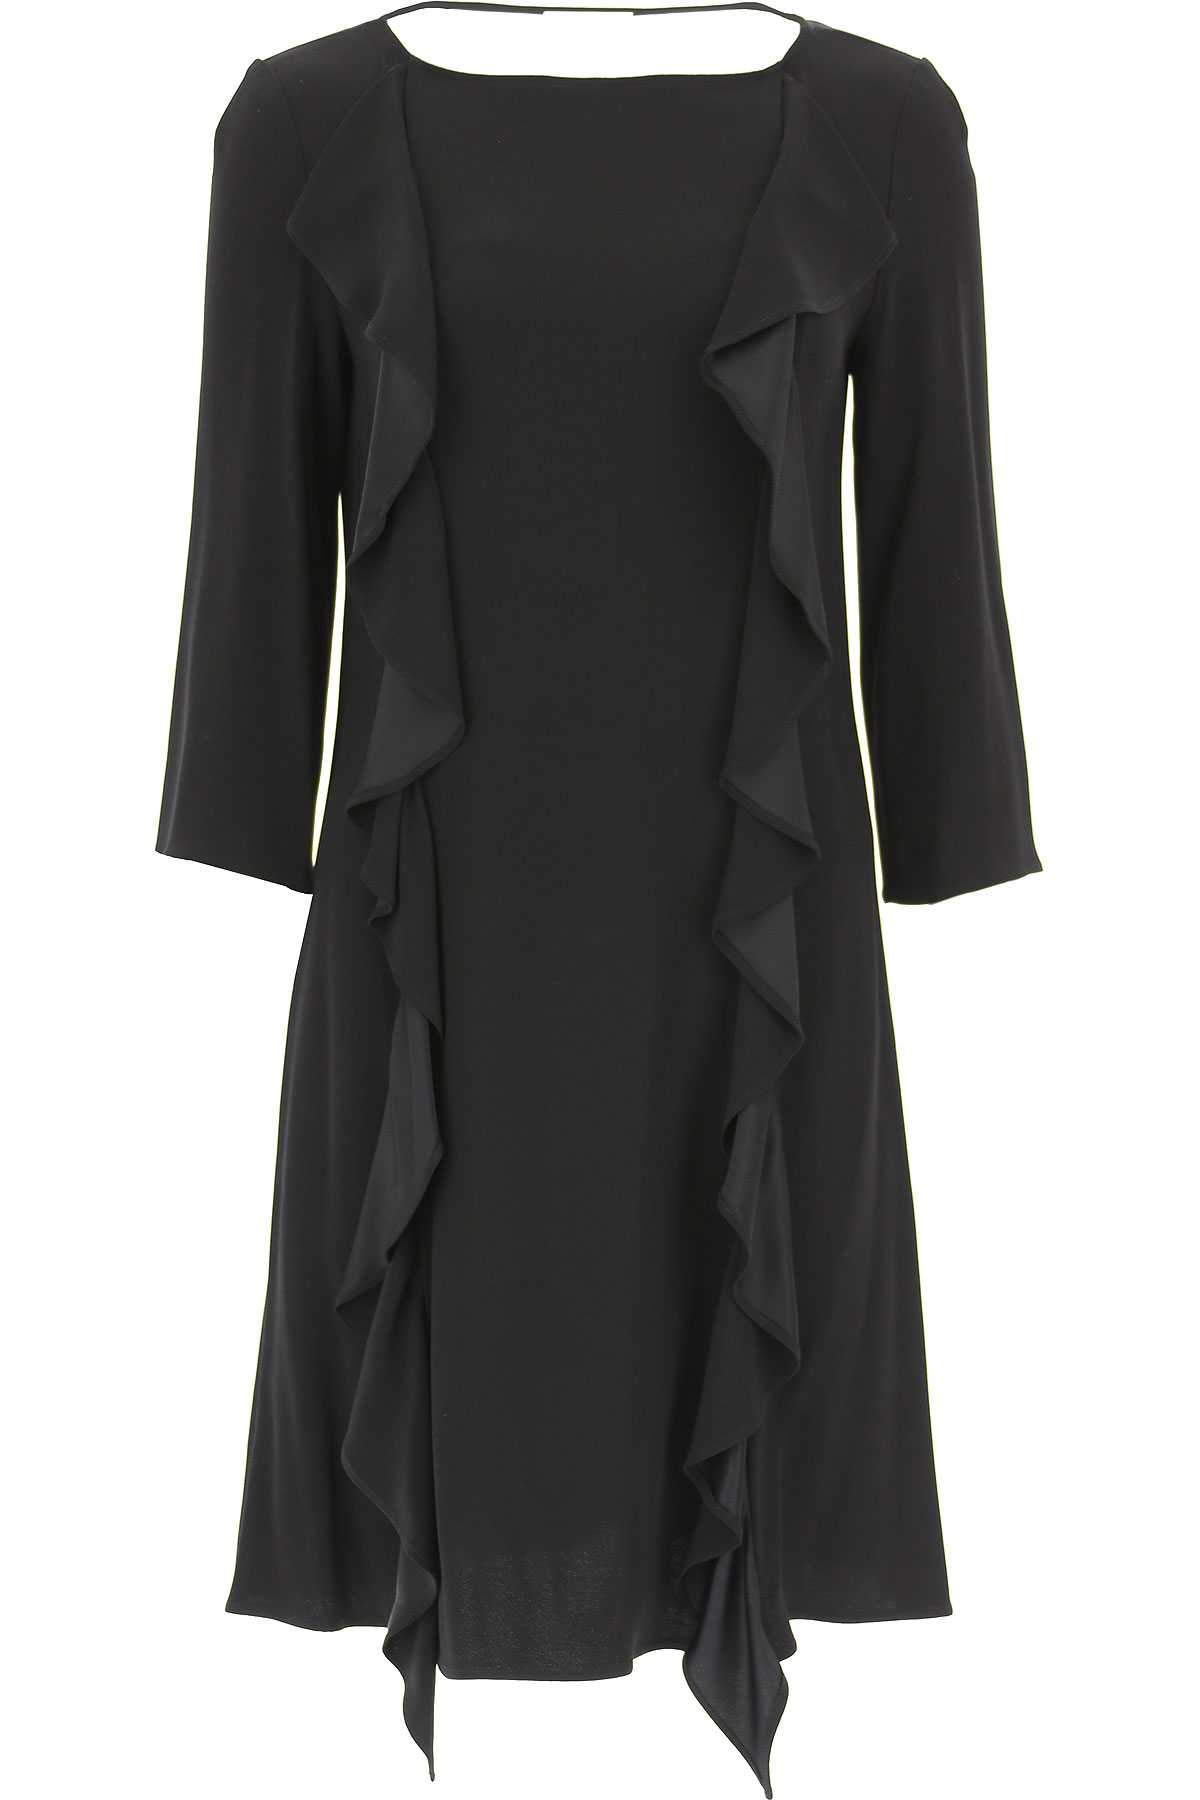 Image of Liu Jo Dress for Women, Evening Cocktail Party, Black, viscosa, 2017, 4 6